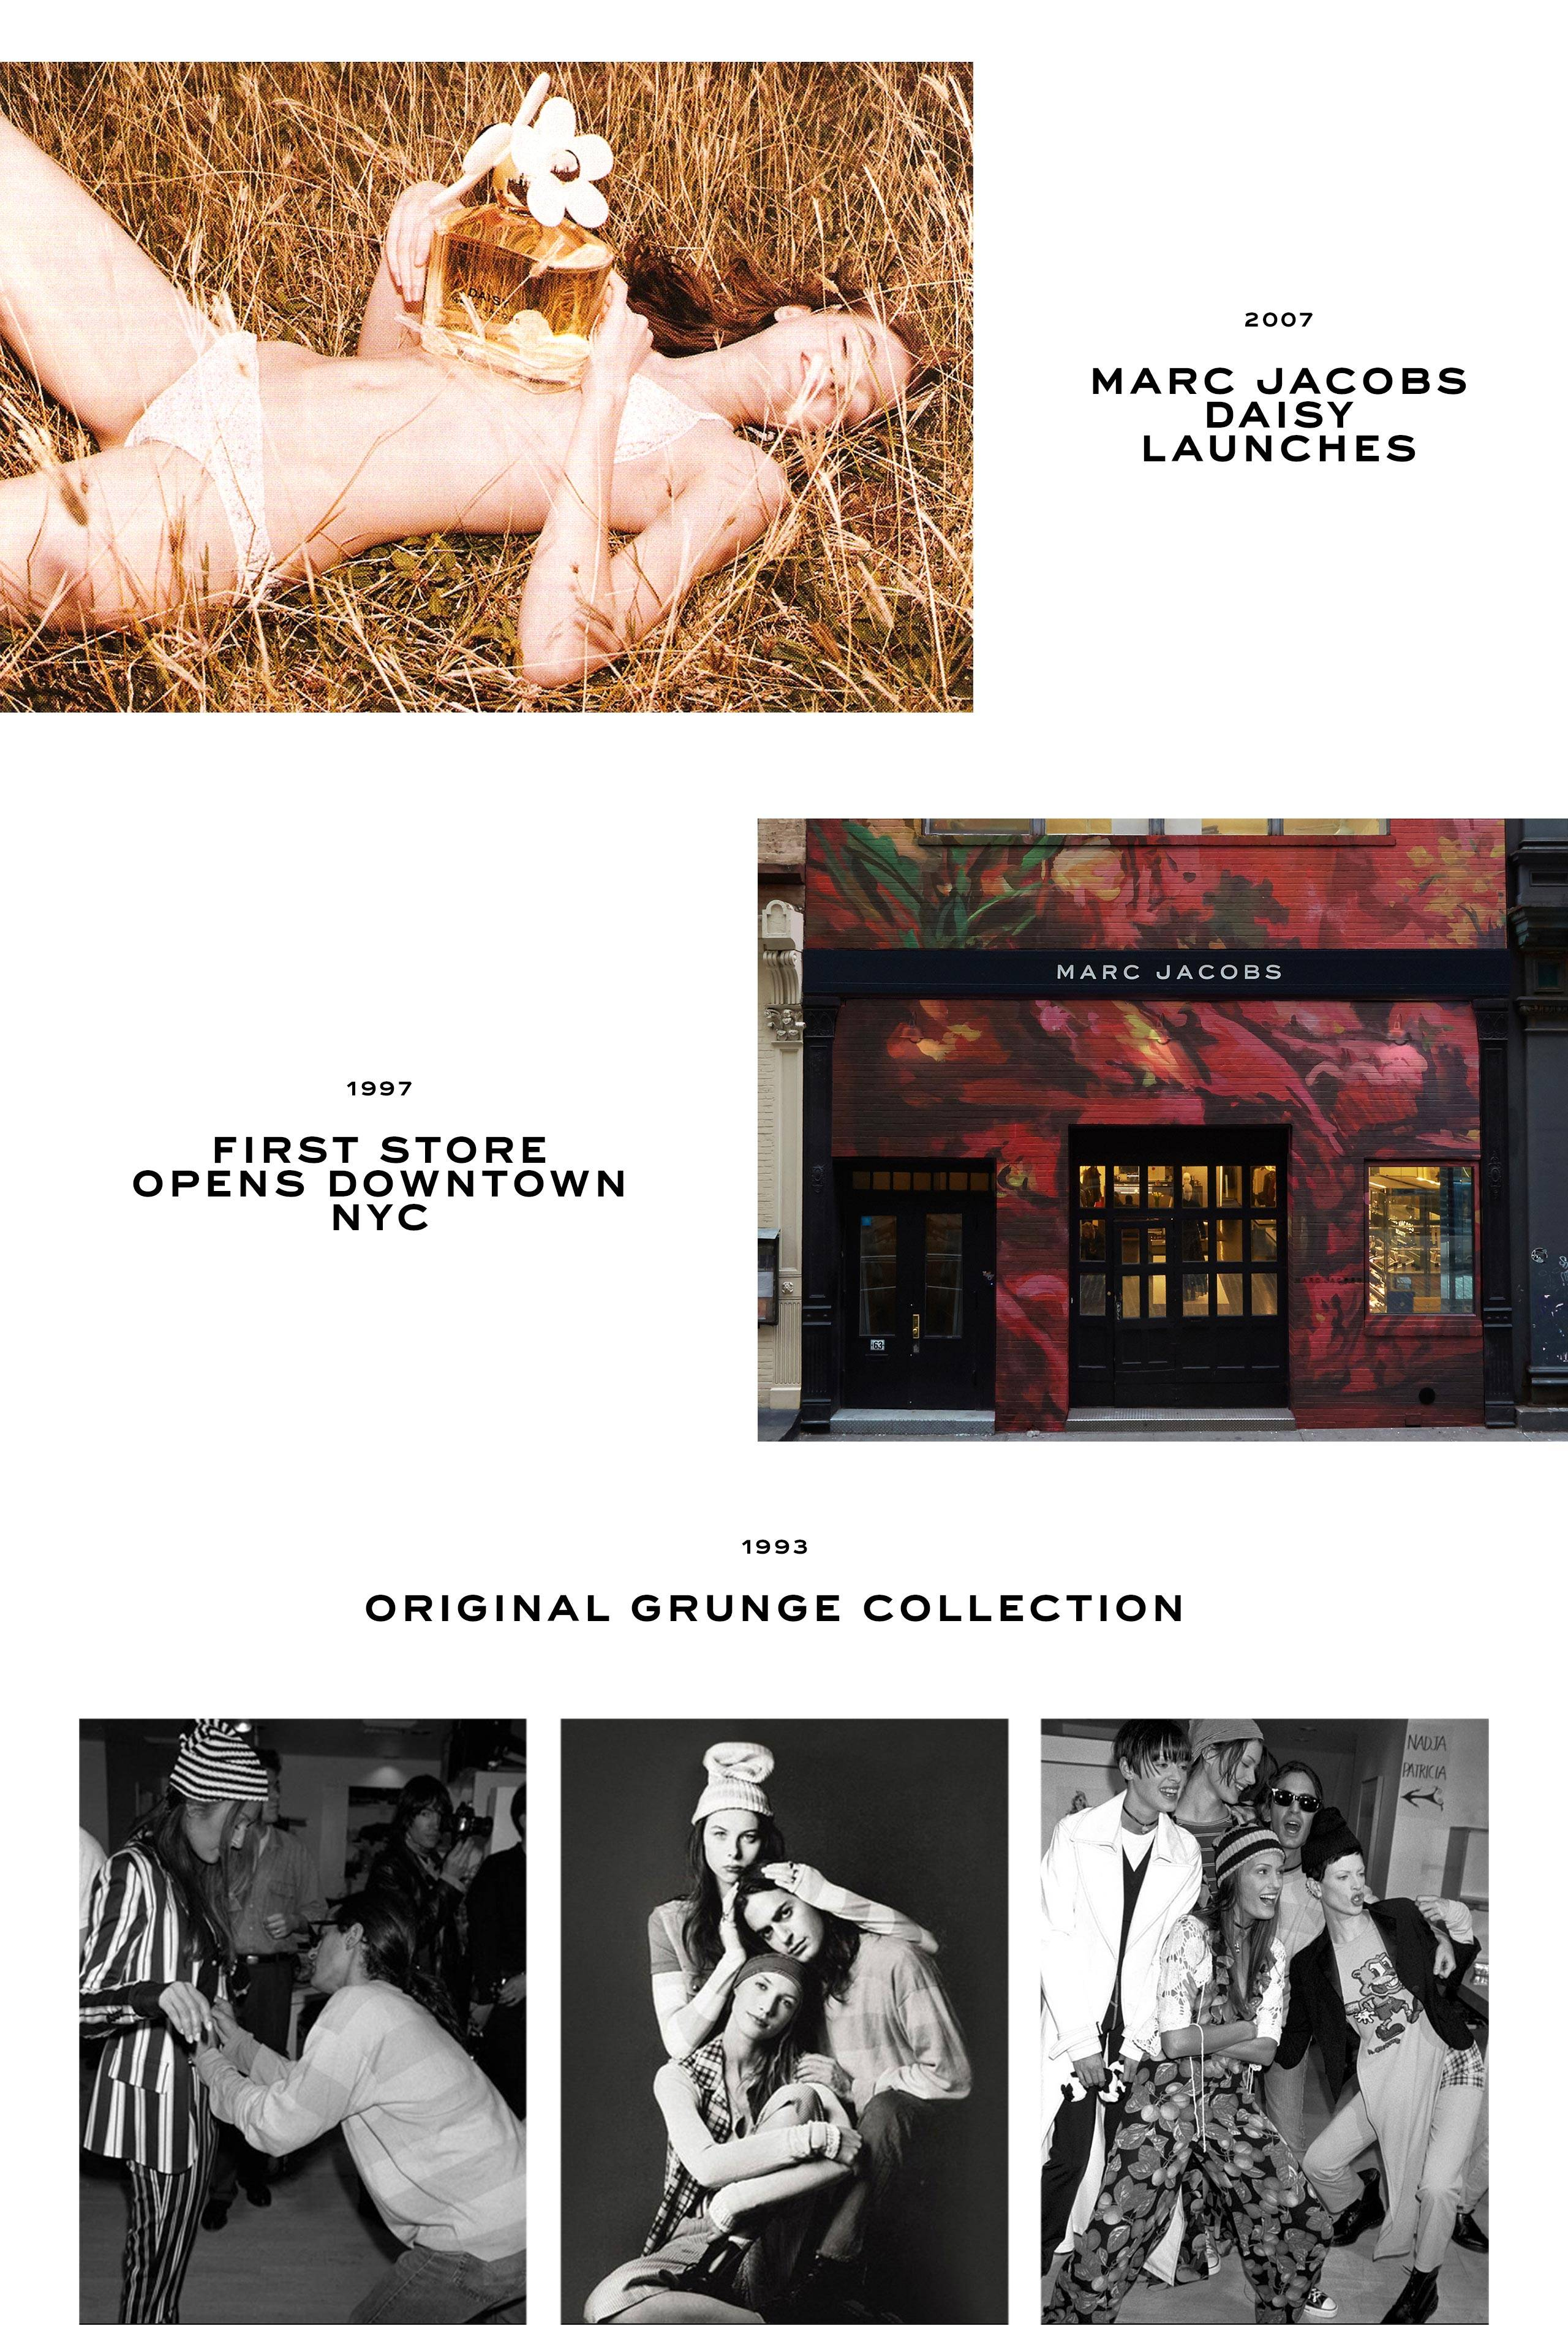 2007: Marc Jacobs Daisy launches. 1997: First store opens downtown NYC. 1993: Original Grunge Collection.